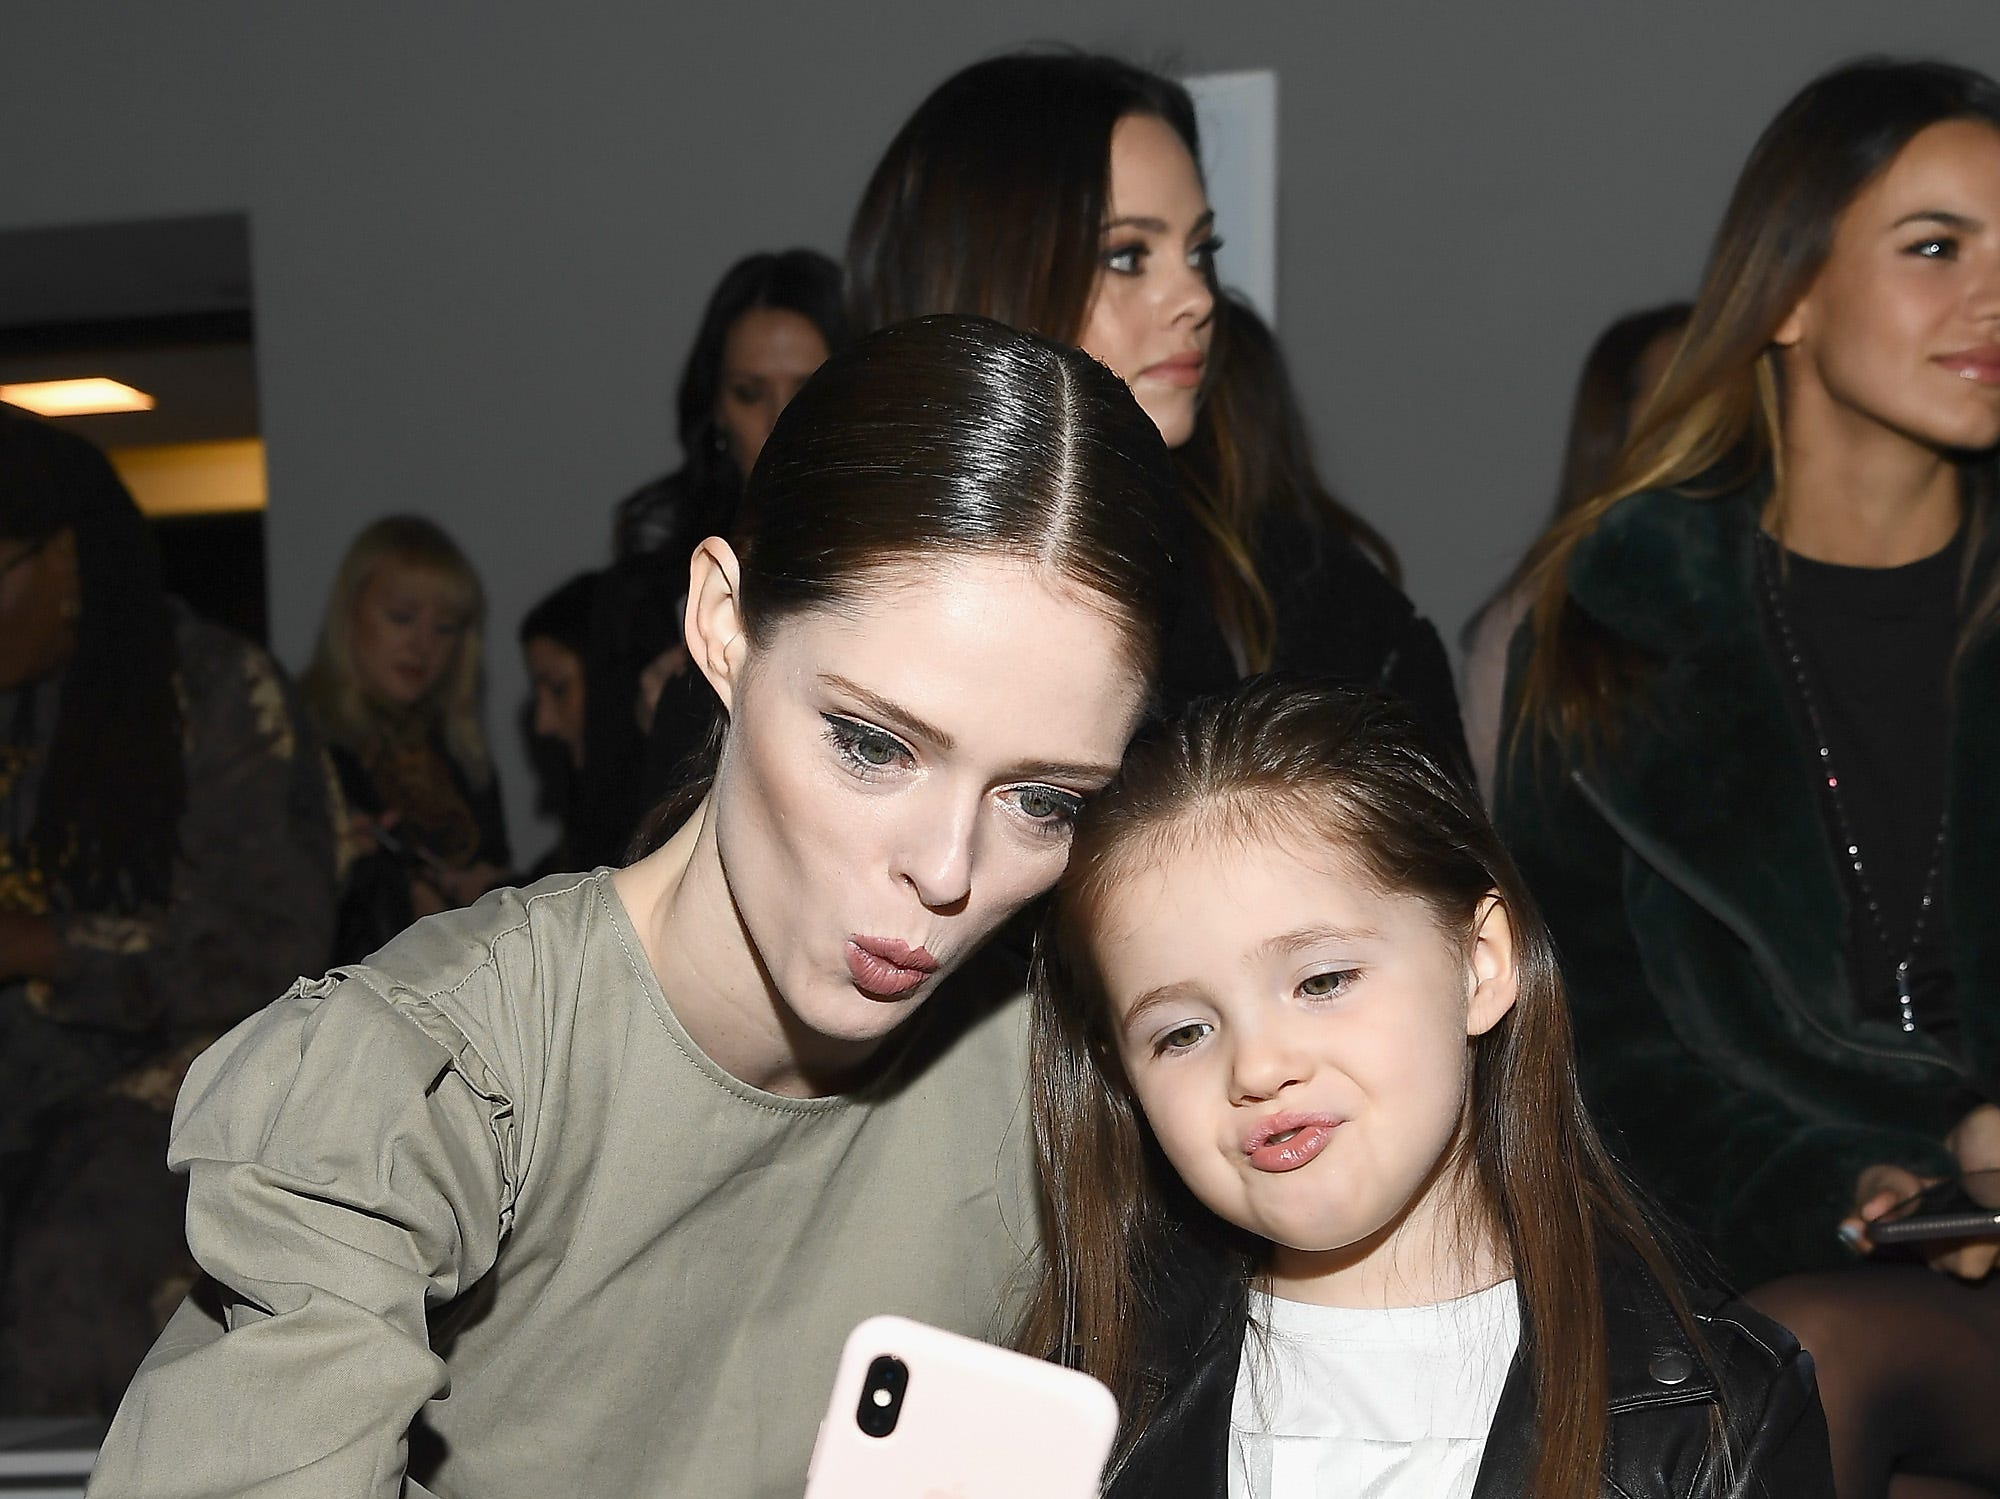 NEW YORK, NY - FEBRUARY 10:  Model Coco Rocha and her duaghter Ioni James Conran attend the Rebecca Minkoff front row during New York Fashion Week: The Shows at Gallery I at Spring Studios on February 10, 2019 in New York City.  (Photo by Dimitrios Kambouris/Getty Images for NYFW: The Shows) ORG XMIT: 775290845 ORIG FILE ID: 1097089338